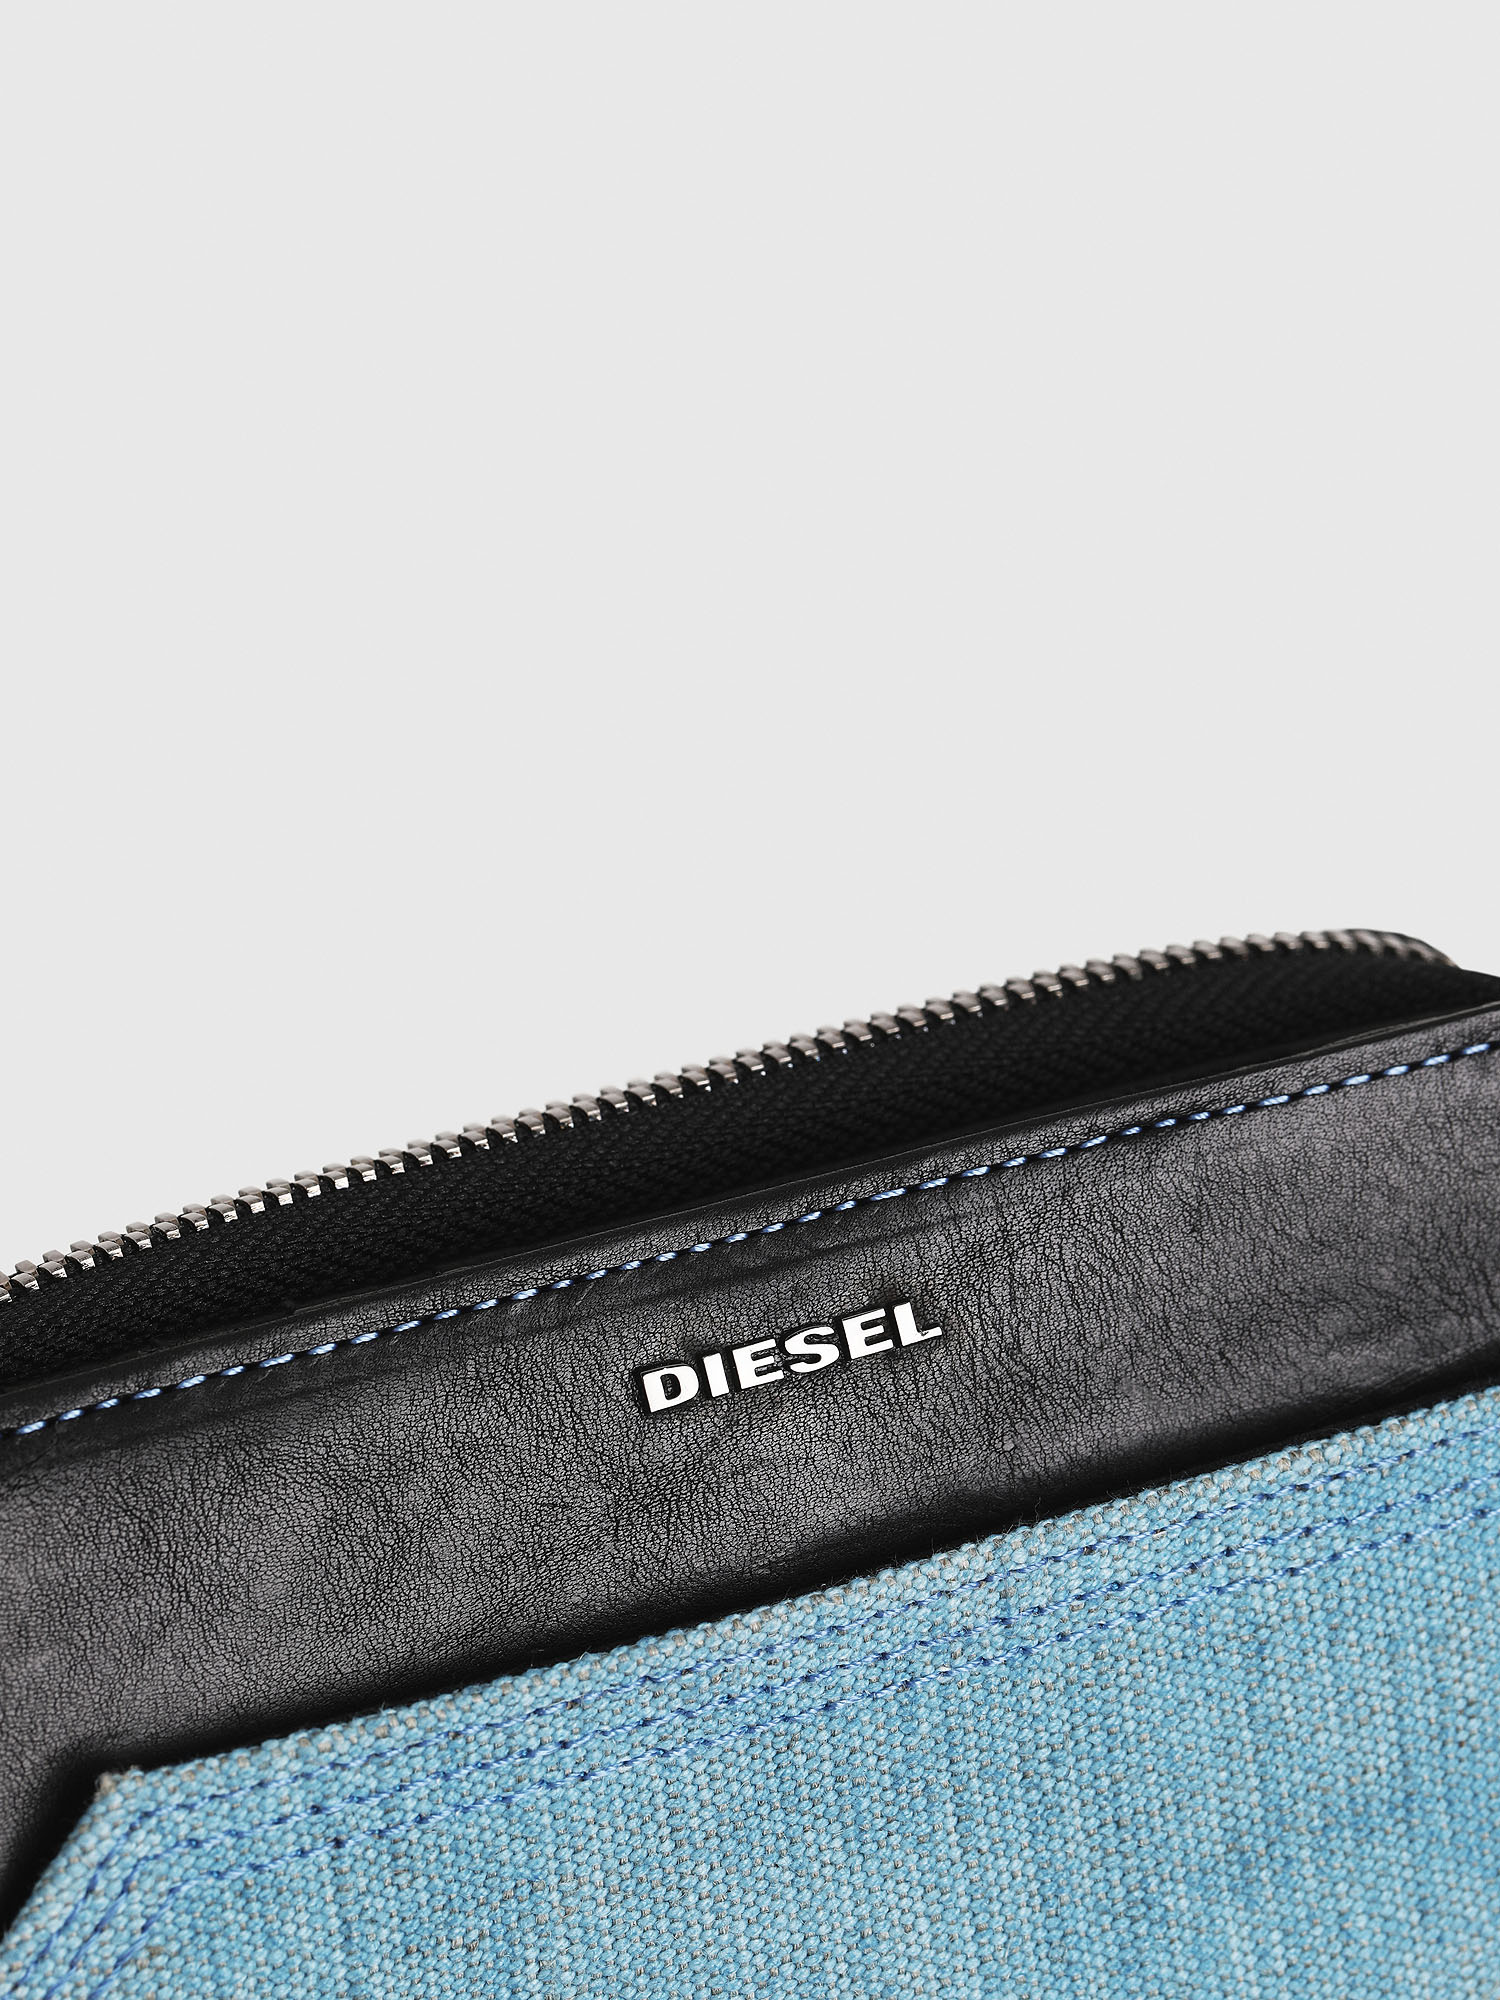 Diesel - BUSINESS II,  - Small Wallets - Image 4